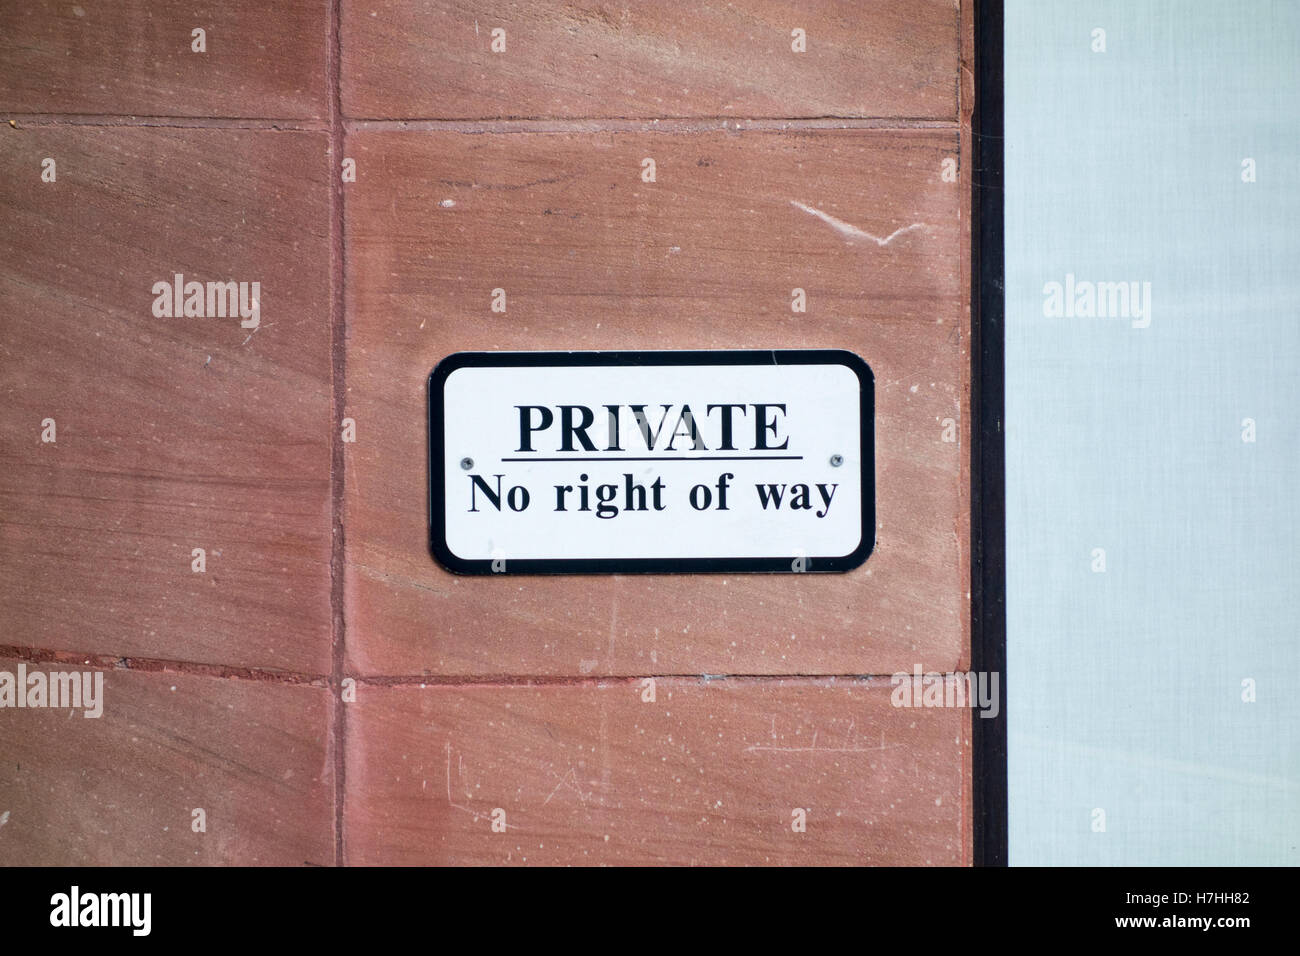 PRIVATE No right of way sign on a wall in London, UK - Stock Image